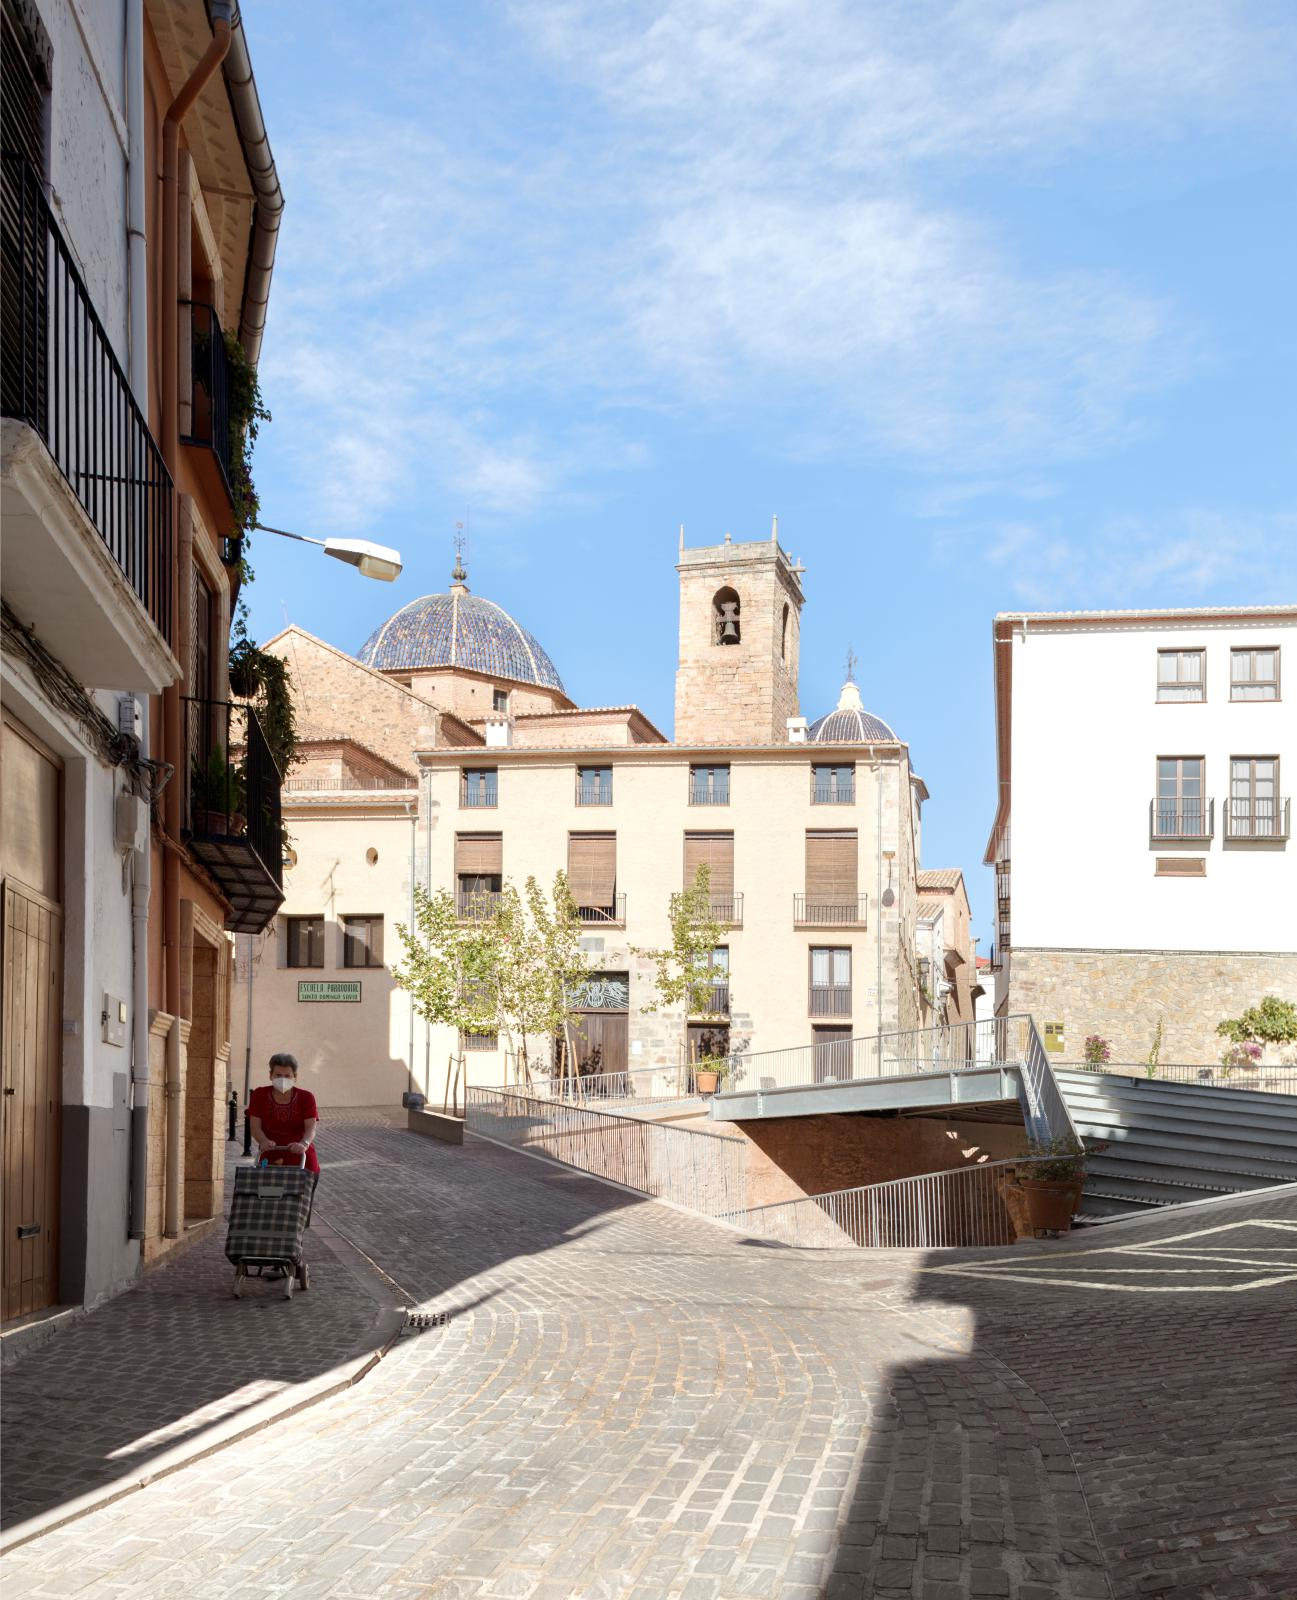 European Award for Architectural Heritage Intervention